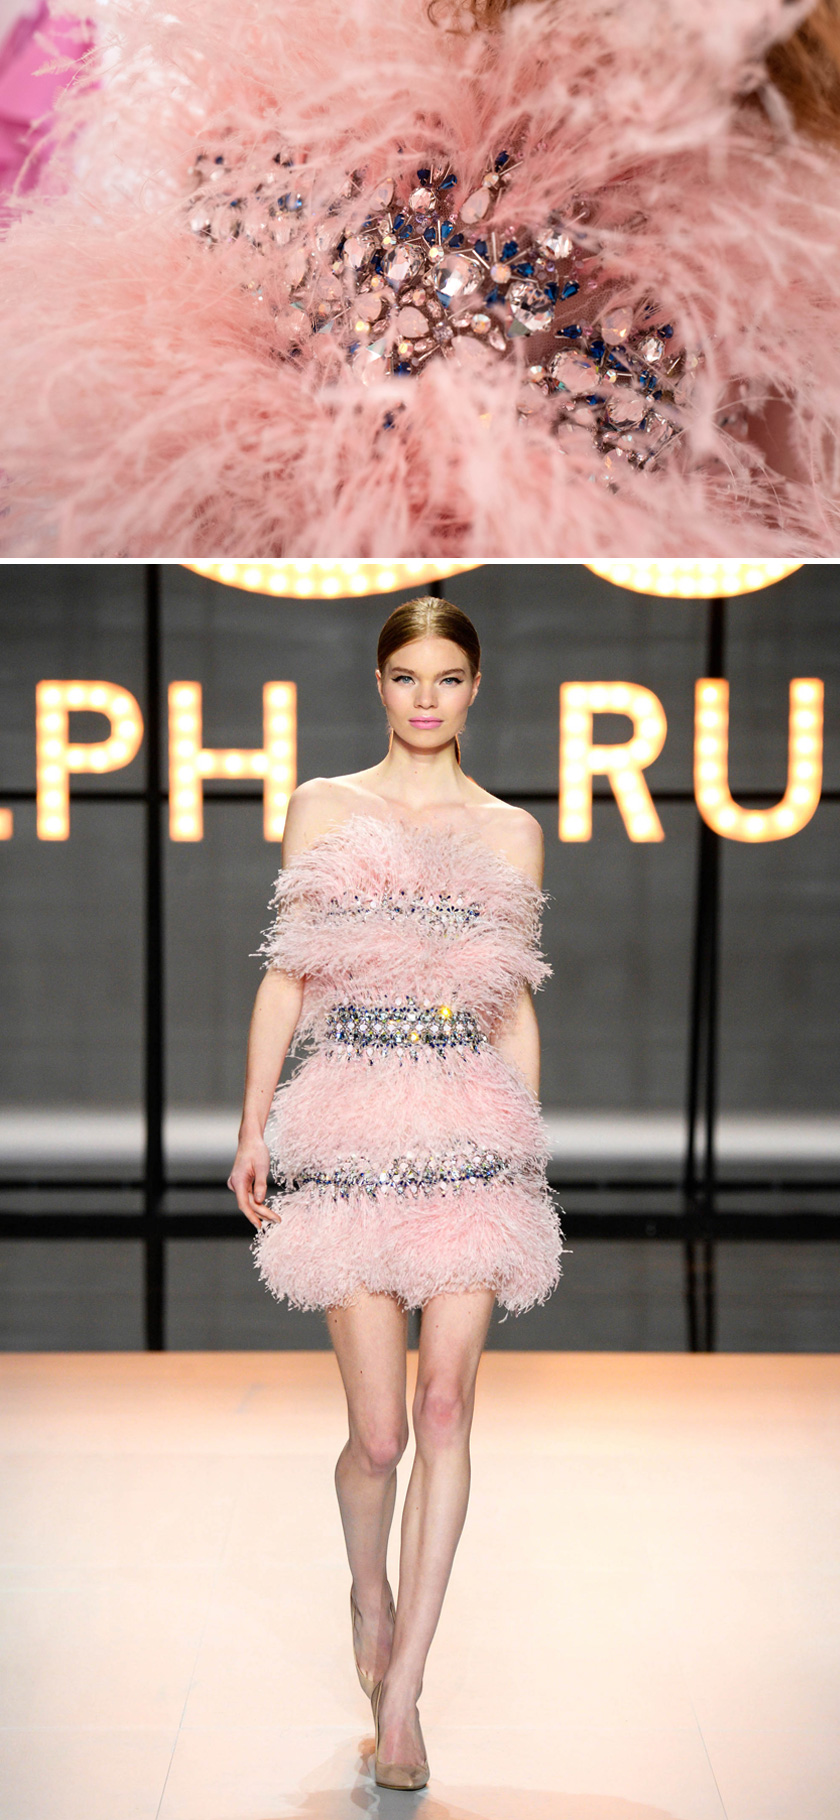 RalphandRusso, RalphandRusso Haute Couture, Haute Couture Spring Summer 2019, Ralph and Russo Haute Couture Spring Summer 2019, Haute Couture, Paris Fashion Week, Perfect Wedding Blog, Couture Bride,